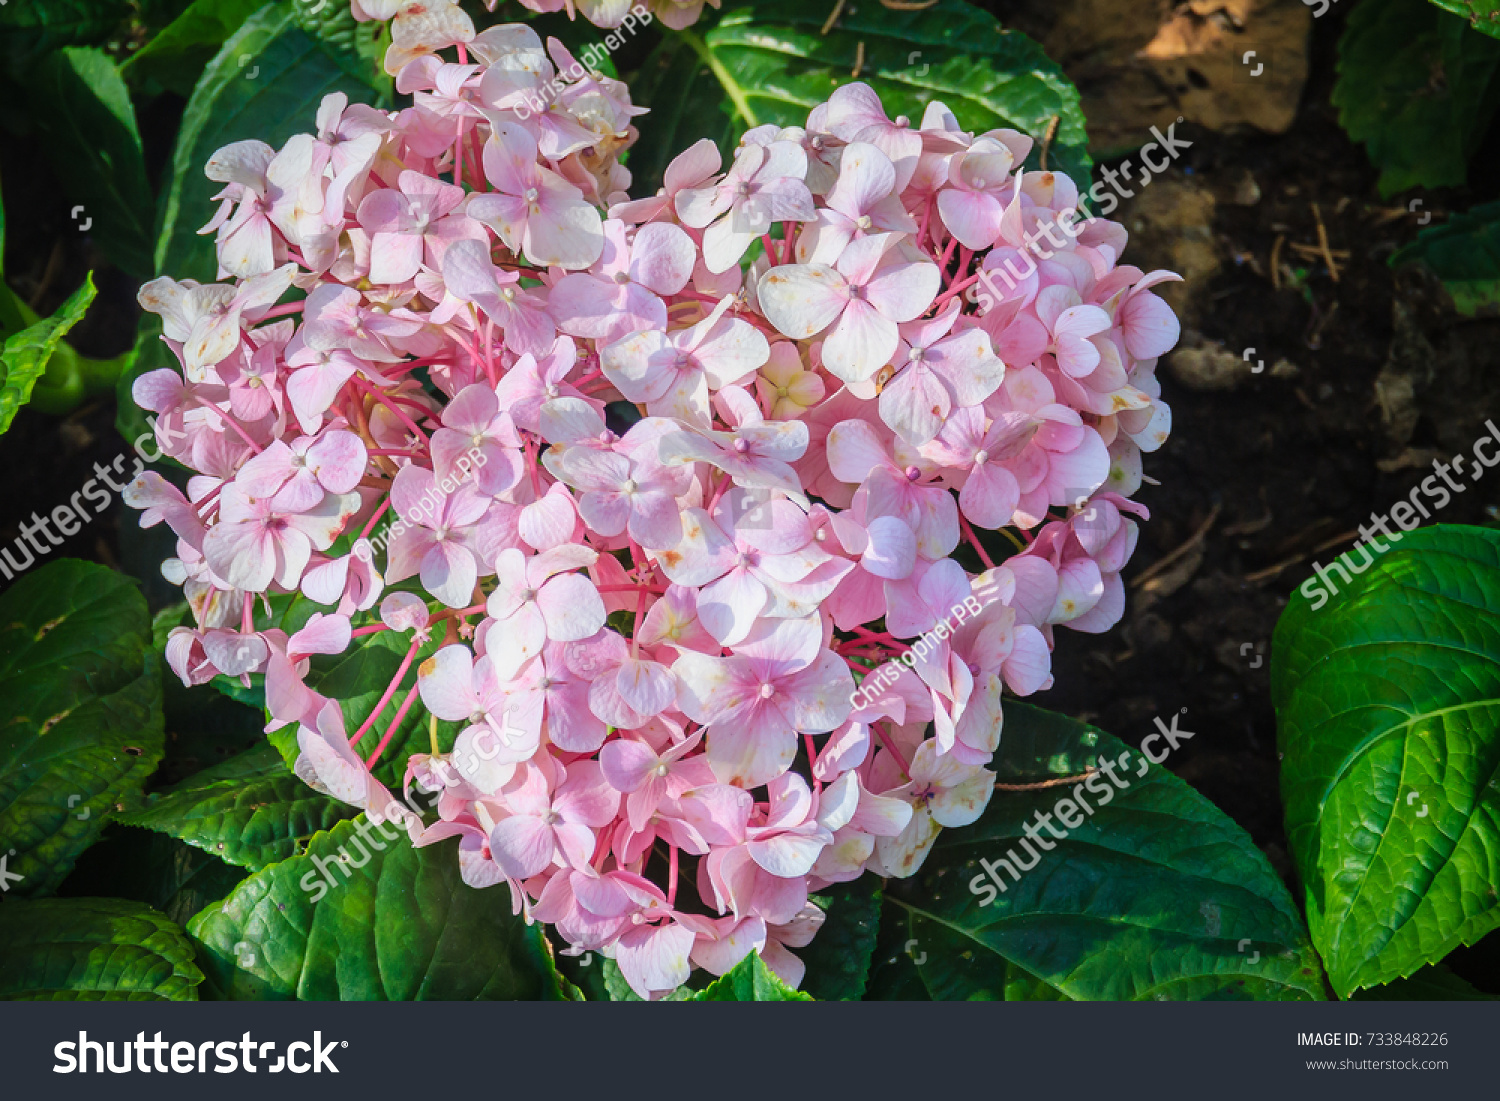 Pink Heart Shaped Hydrangea Macrophylla Flowers Stock Photo Image